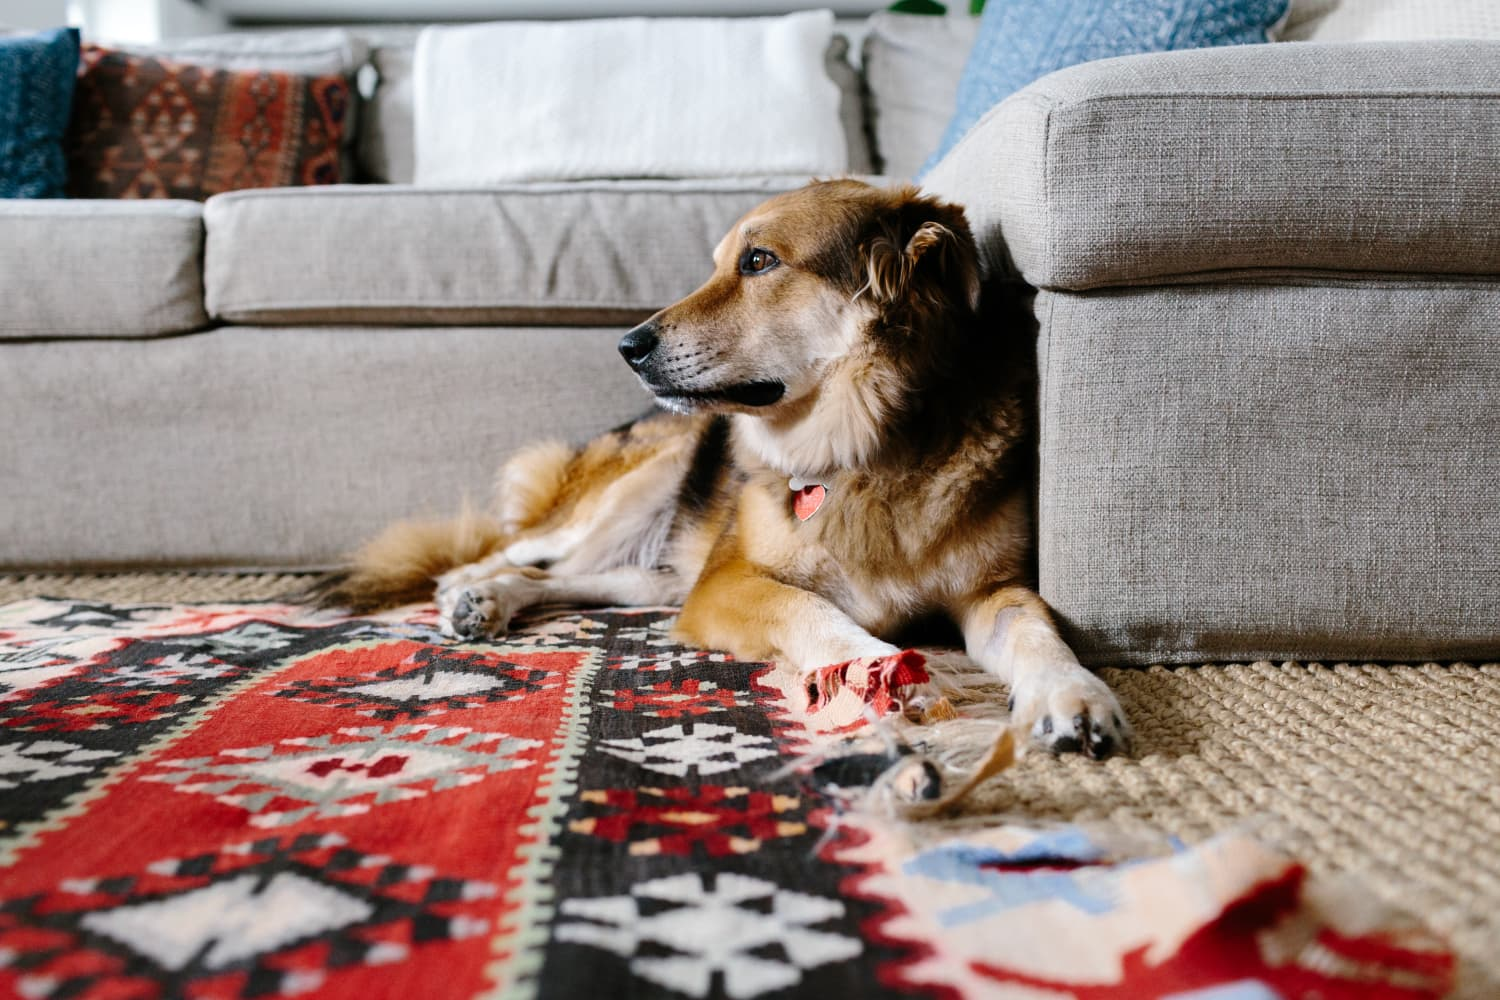 What You Should Look For (and Avoid) When Shopping for a Pet-Friendly Rug